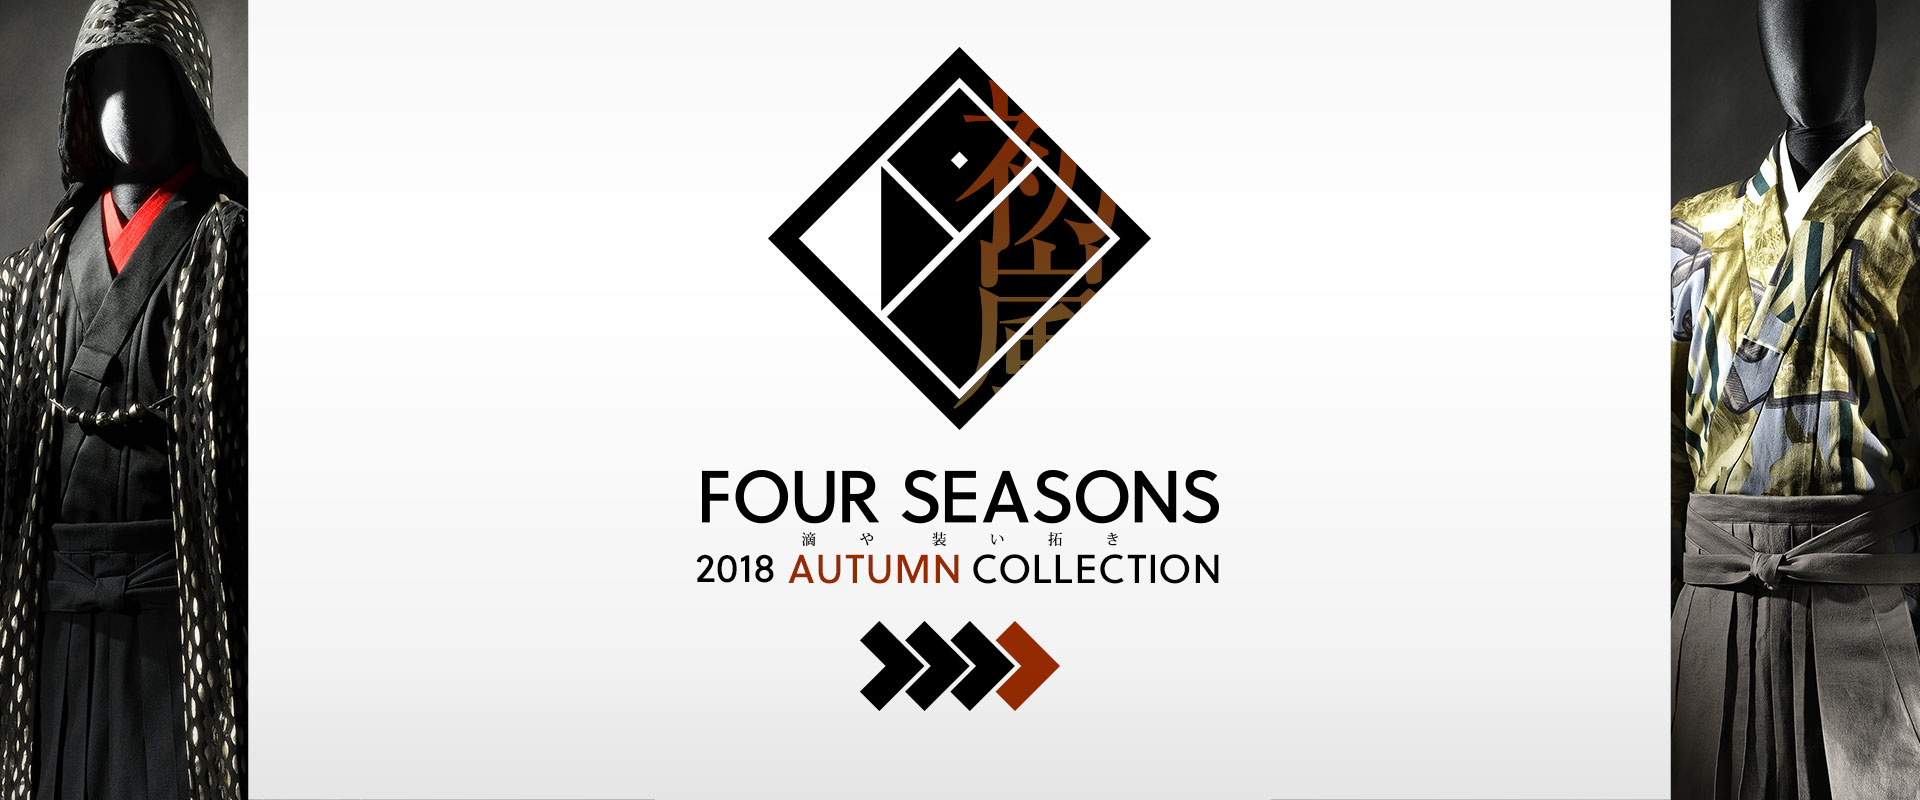 [PHOTO:FOUR SEASONS 2018 AUTUMN COLLECTION]